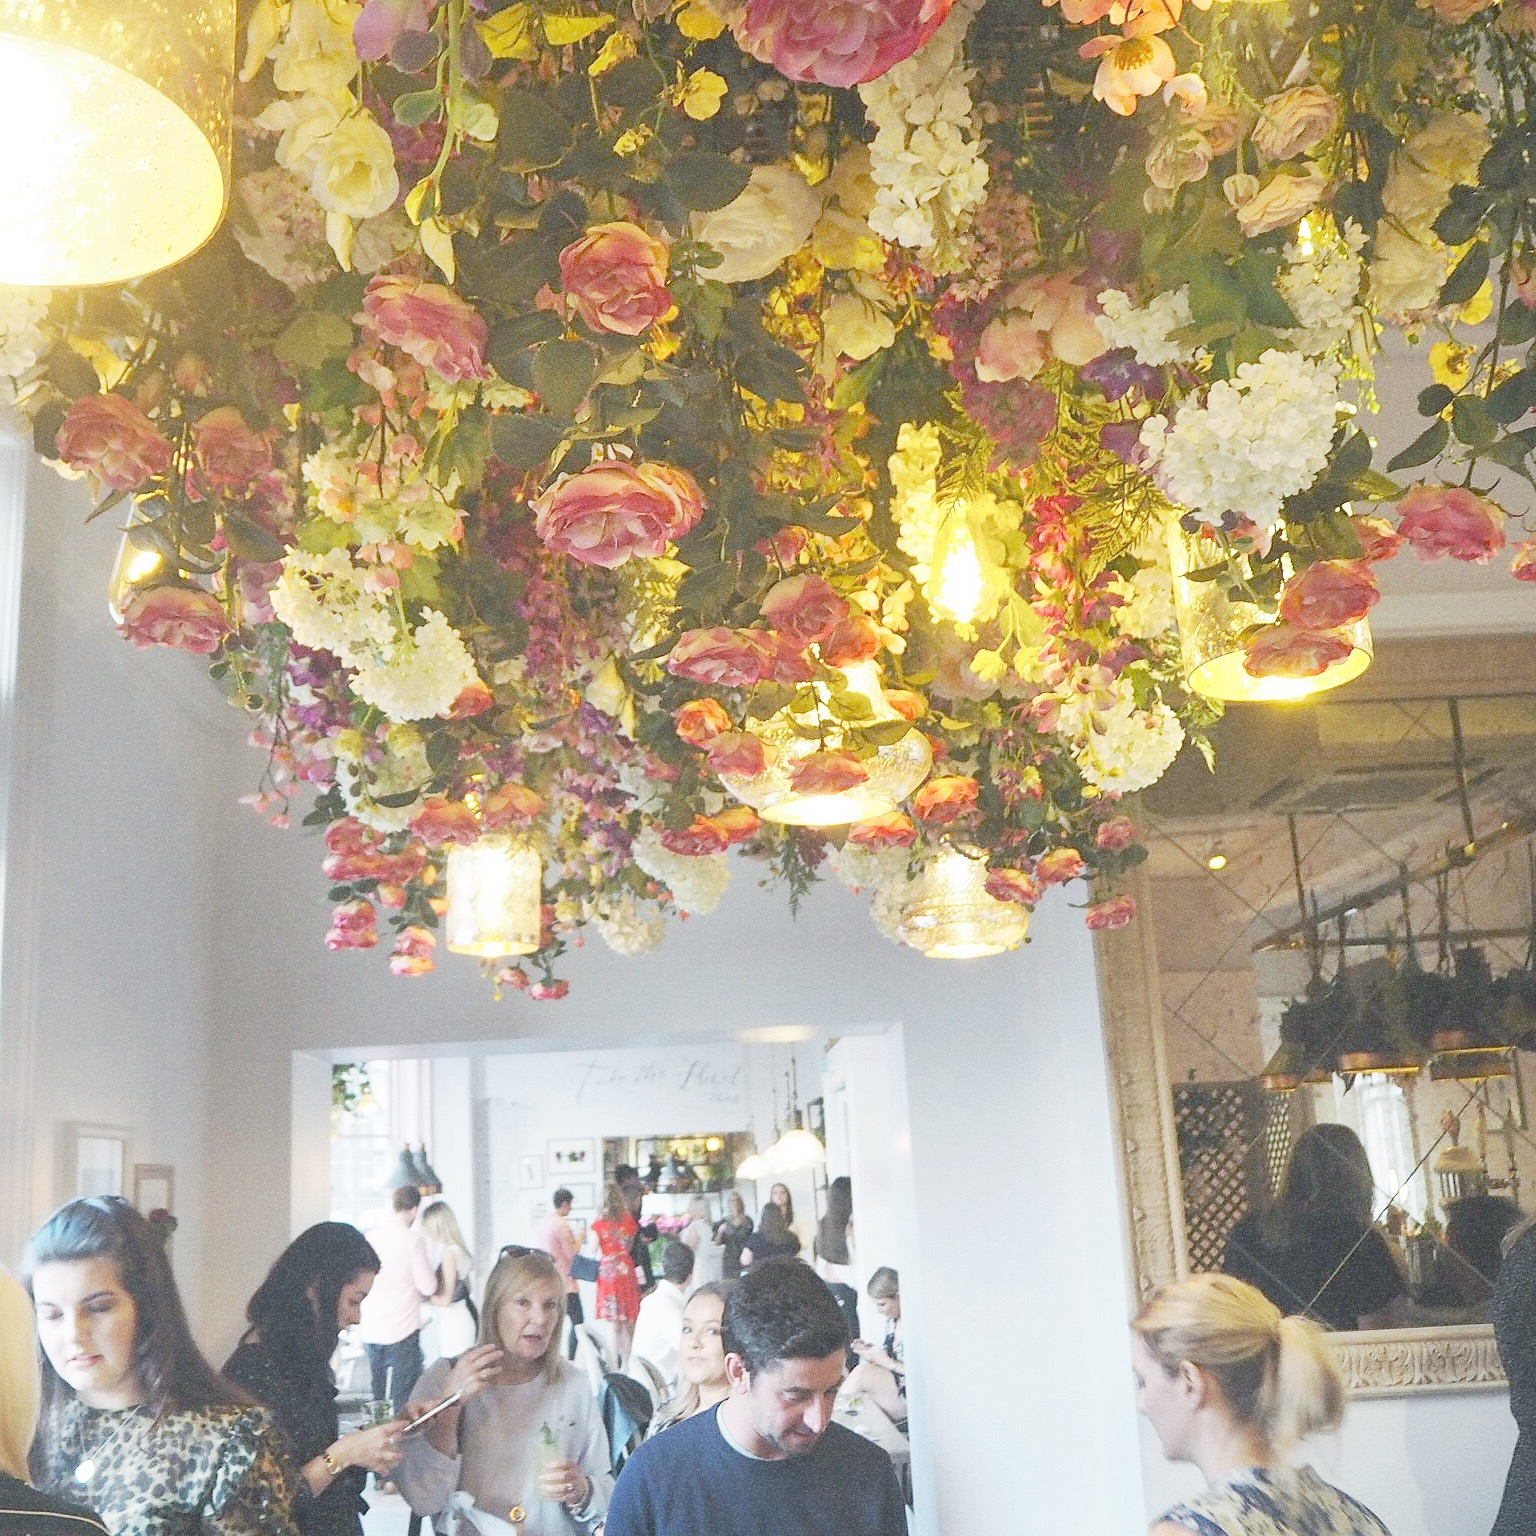 Flowery Fun at The Florist Liverpool | Food